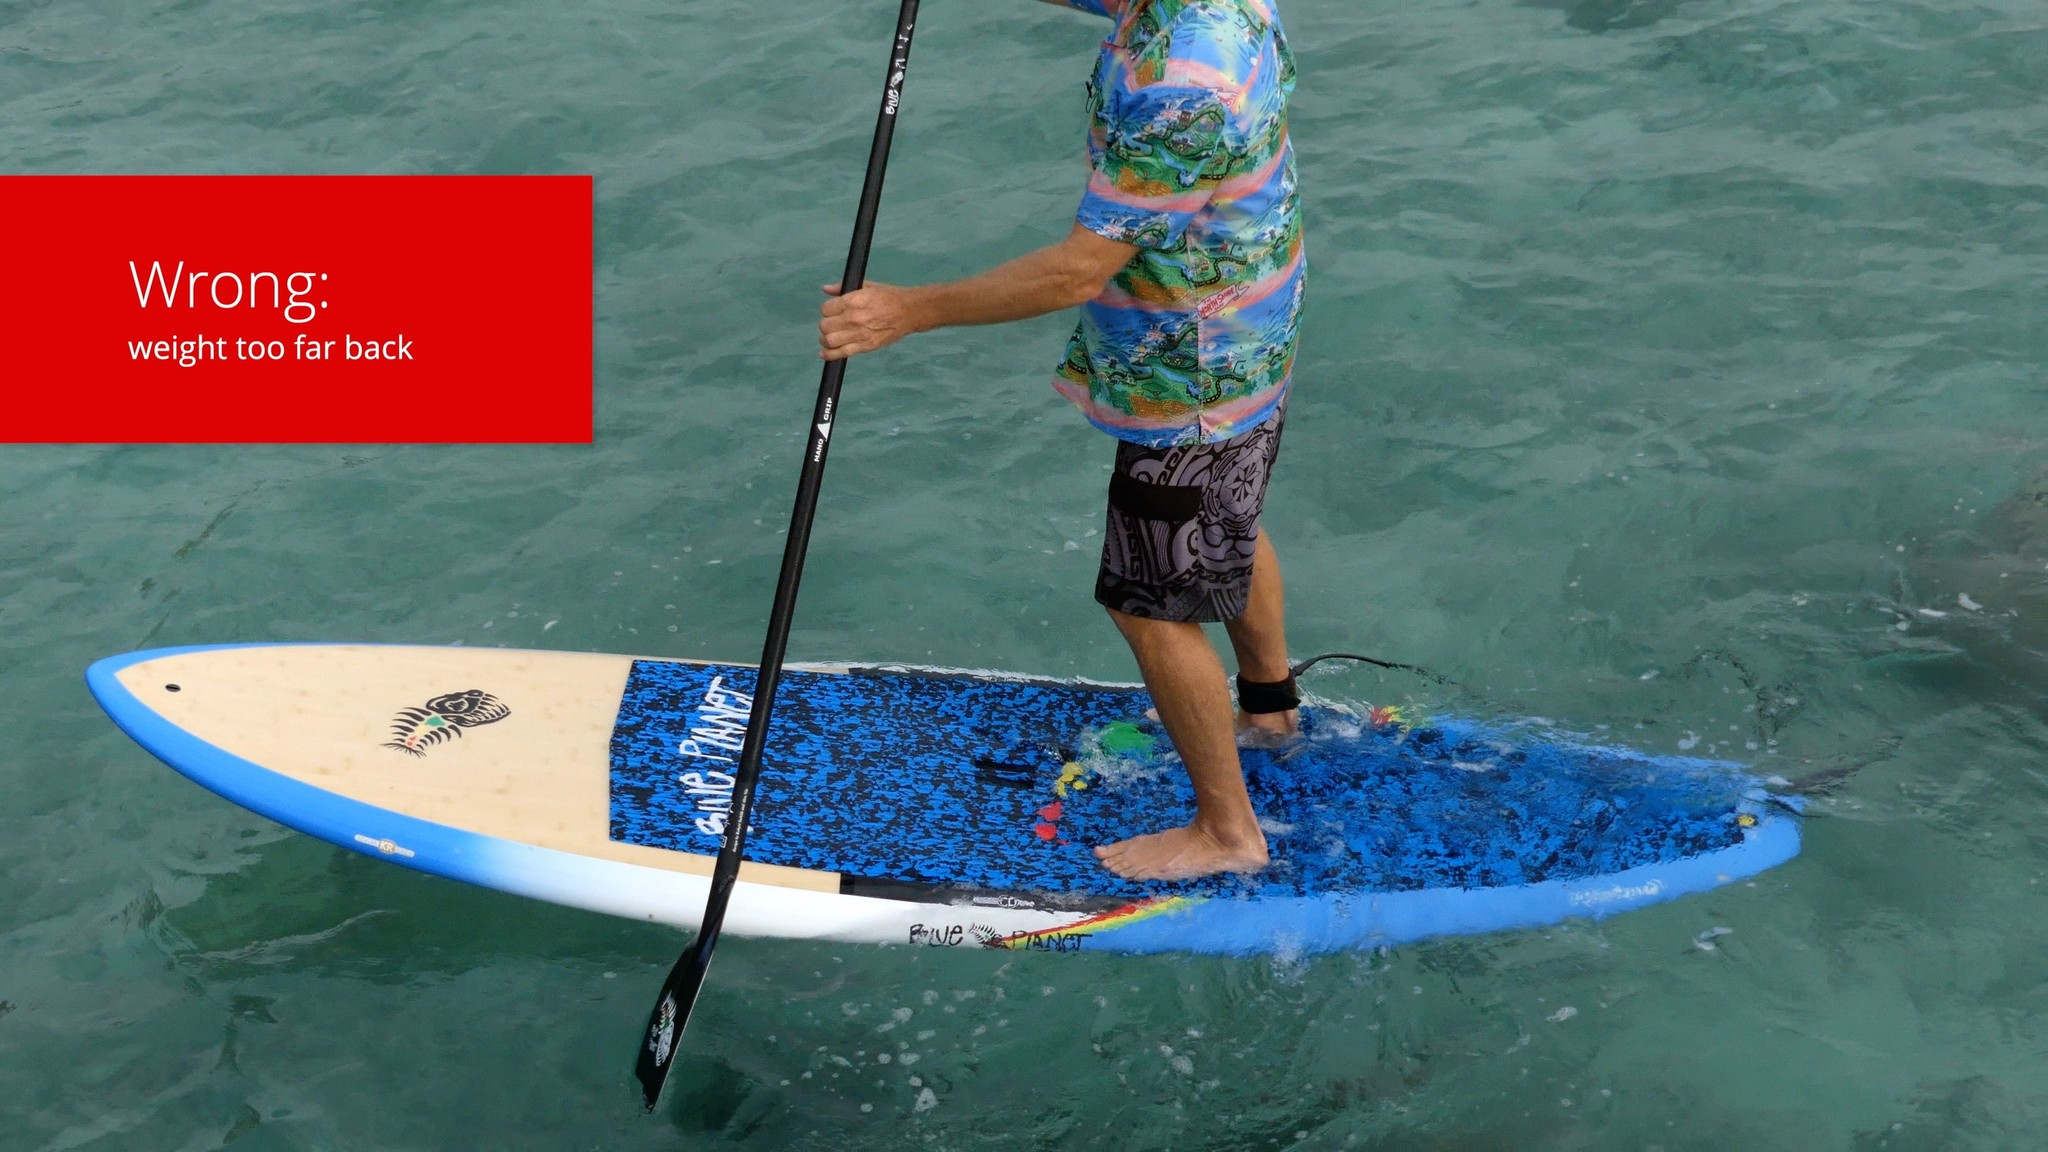 how to sup weight too far back